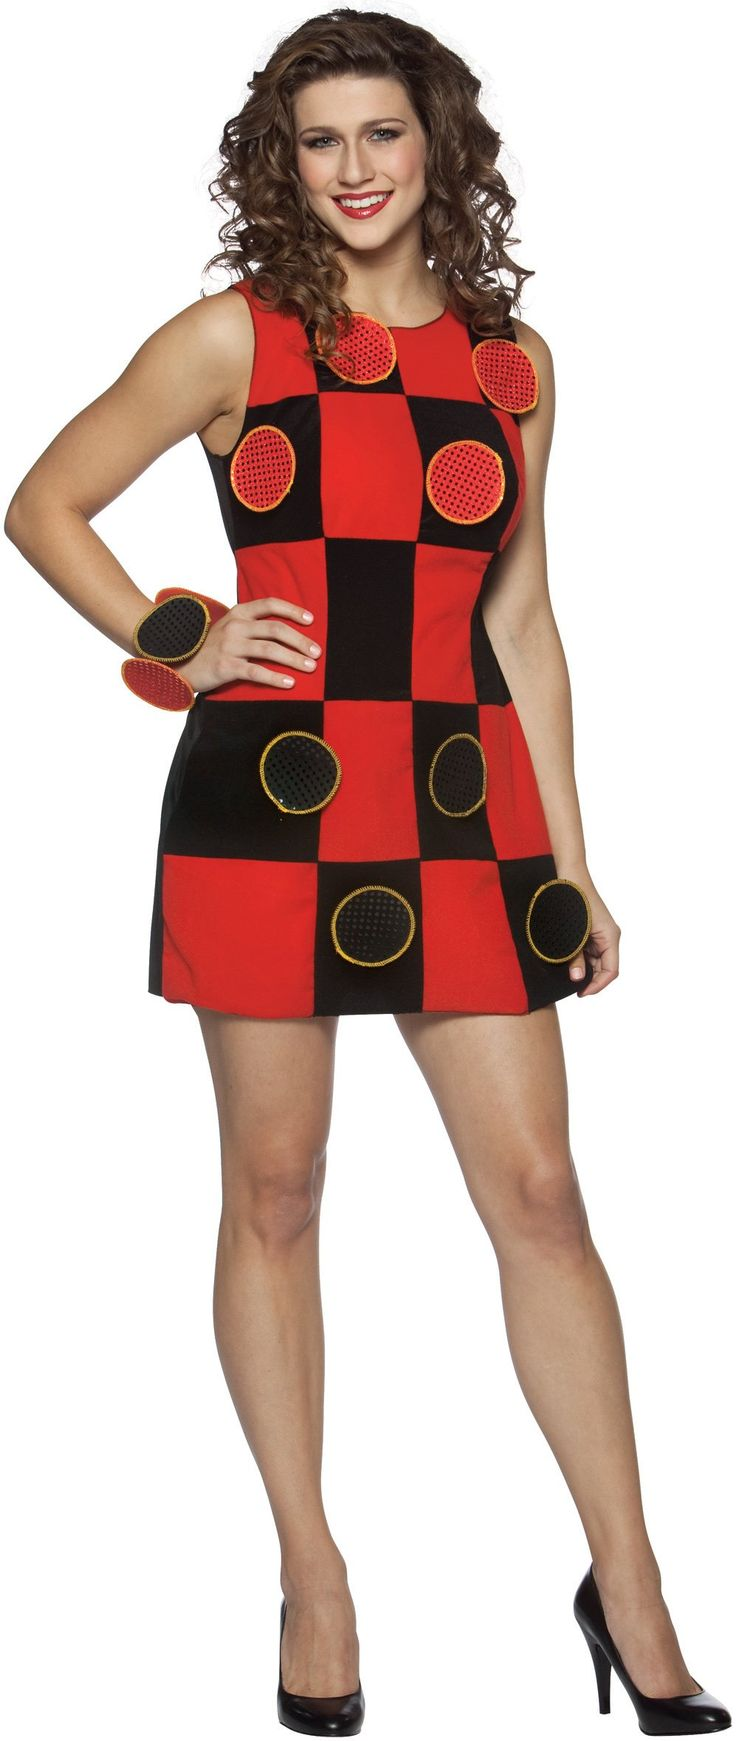 34 best Game Themed Costumes images on Pinterest